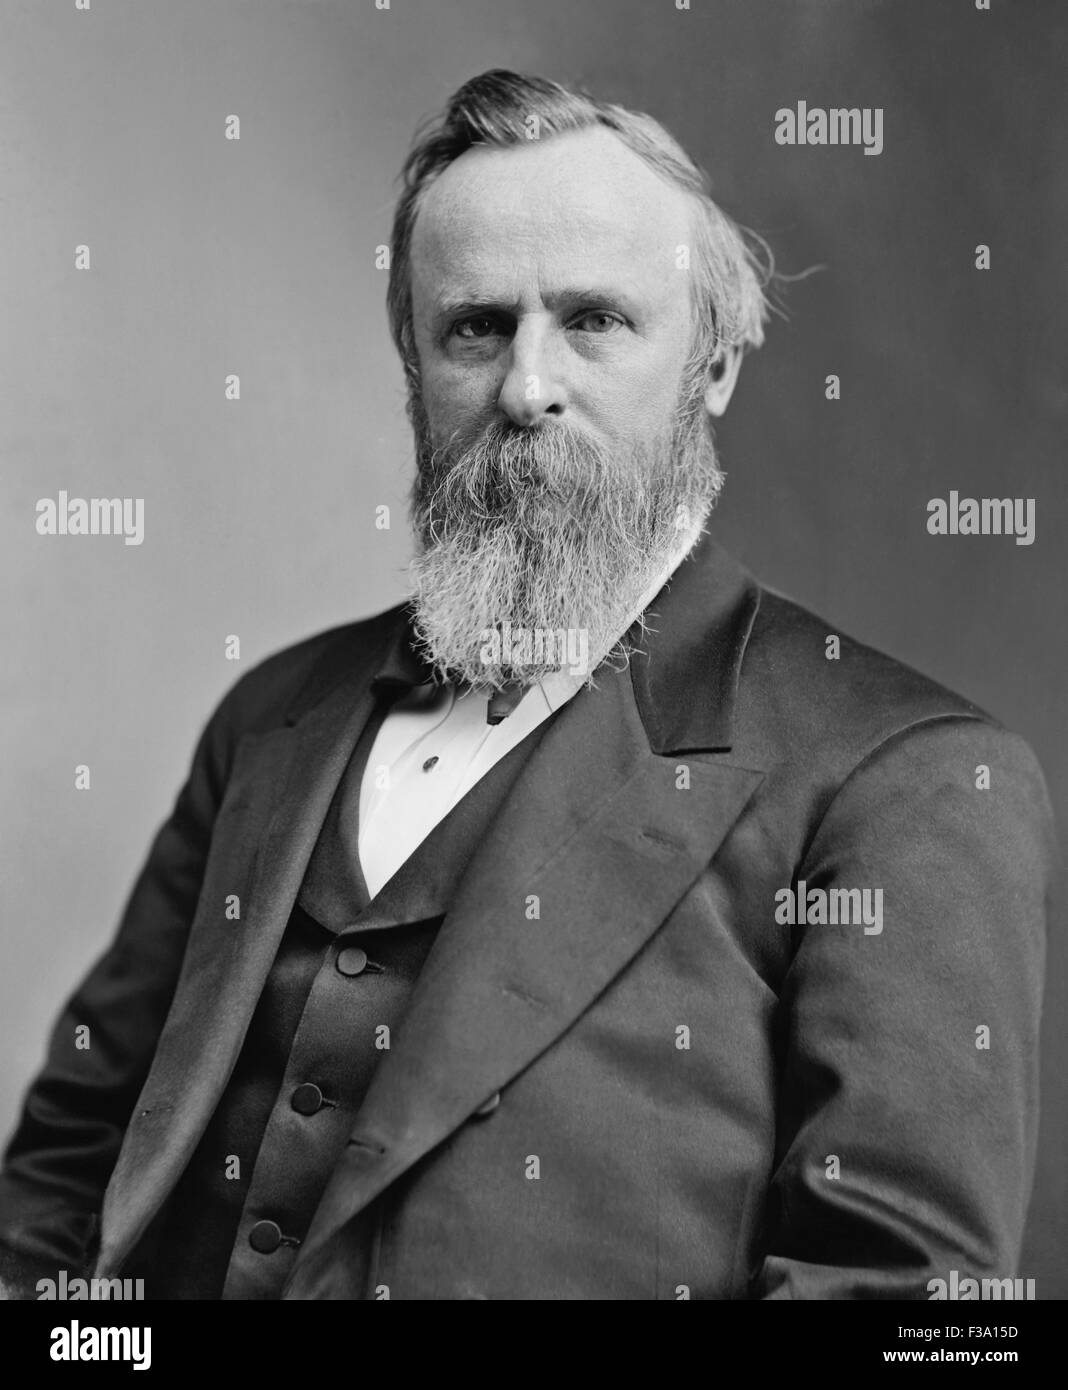 Vintage American history photo of President Rutherford B. Hayes. - Stock Image